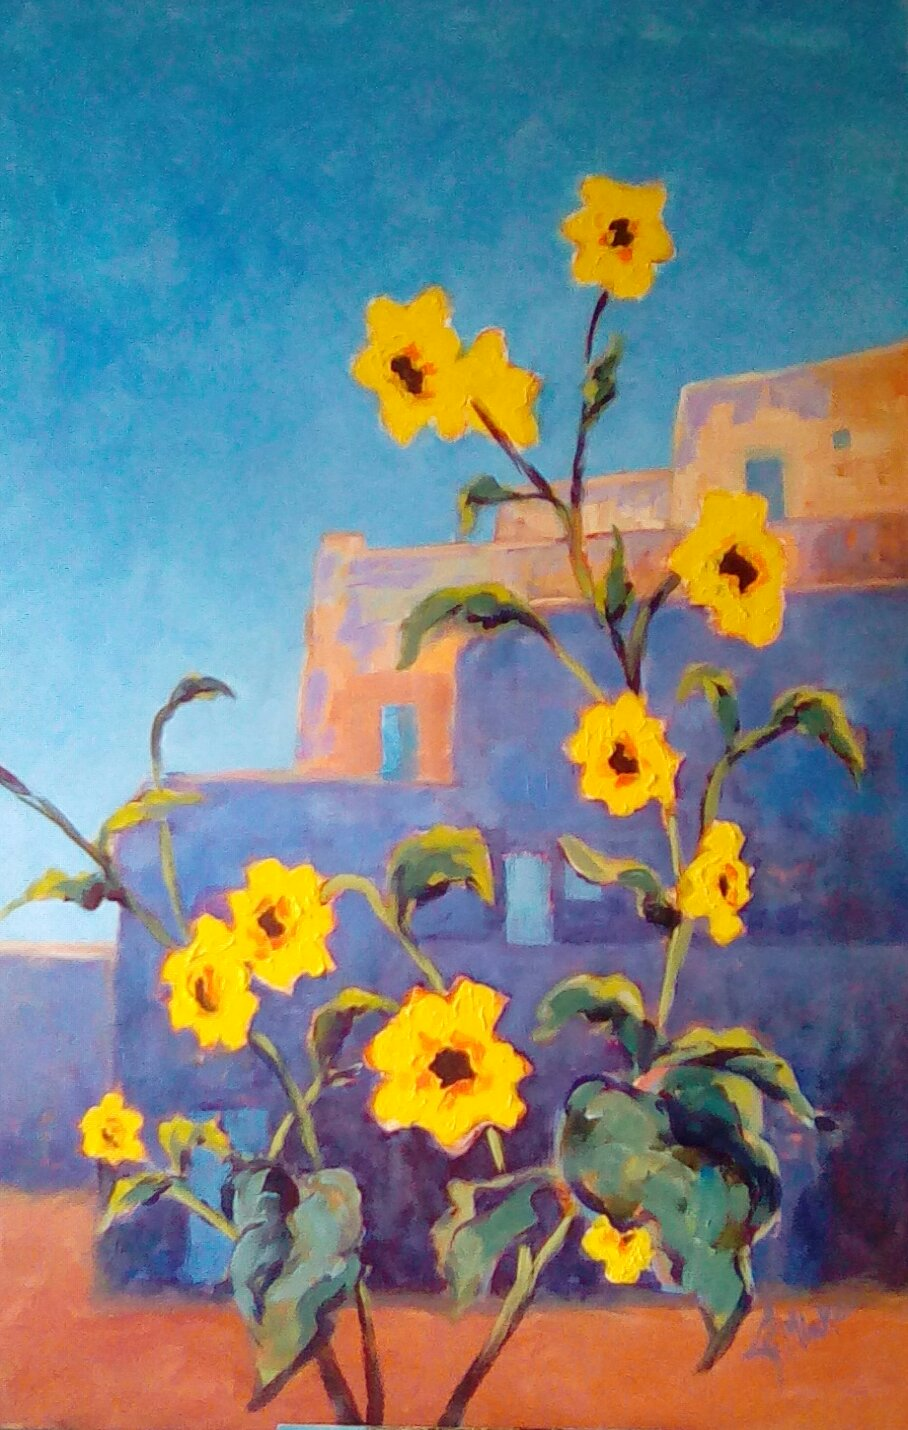 A painting of sunflowers in front of pueblo buildings